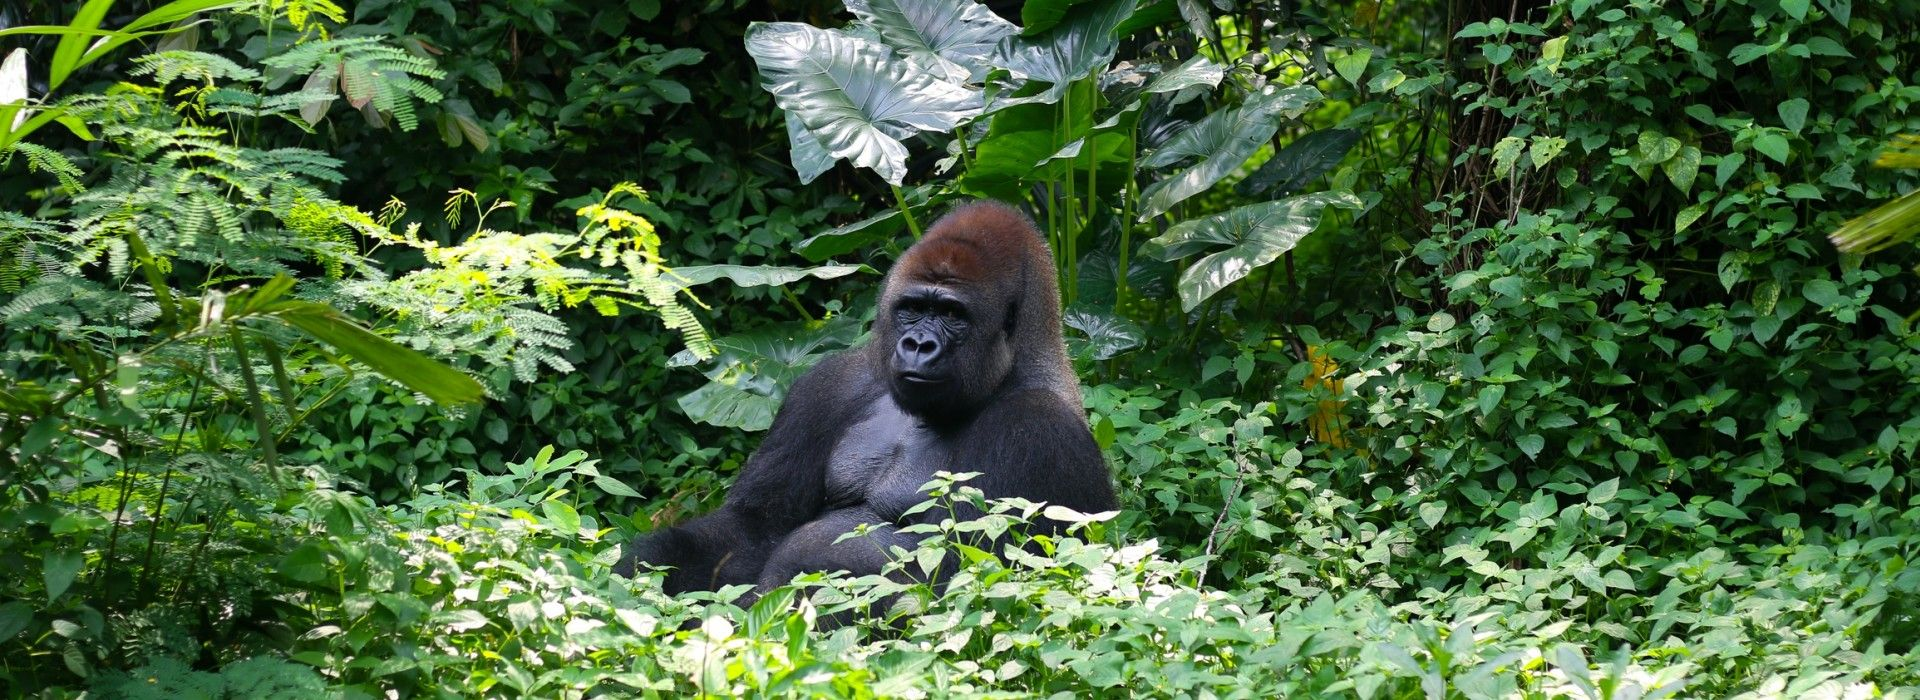 Sightseeing, attractions, culture and history Tours in Rwanda